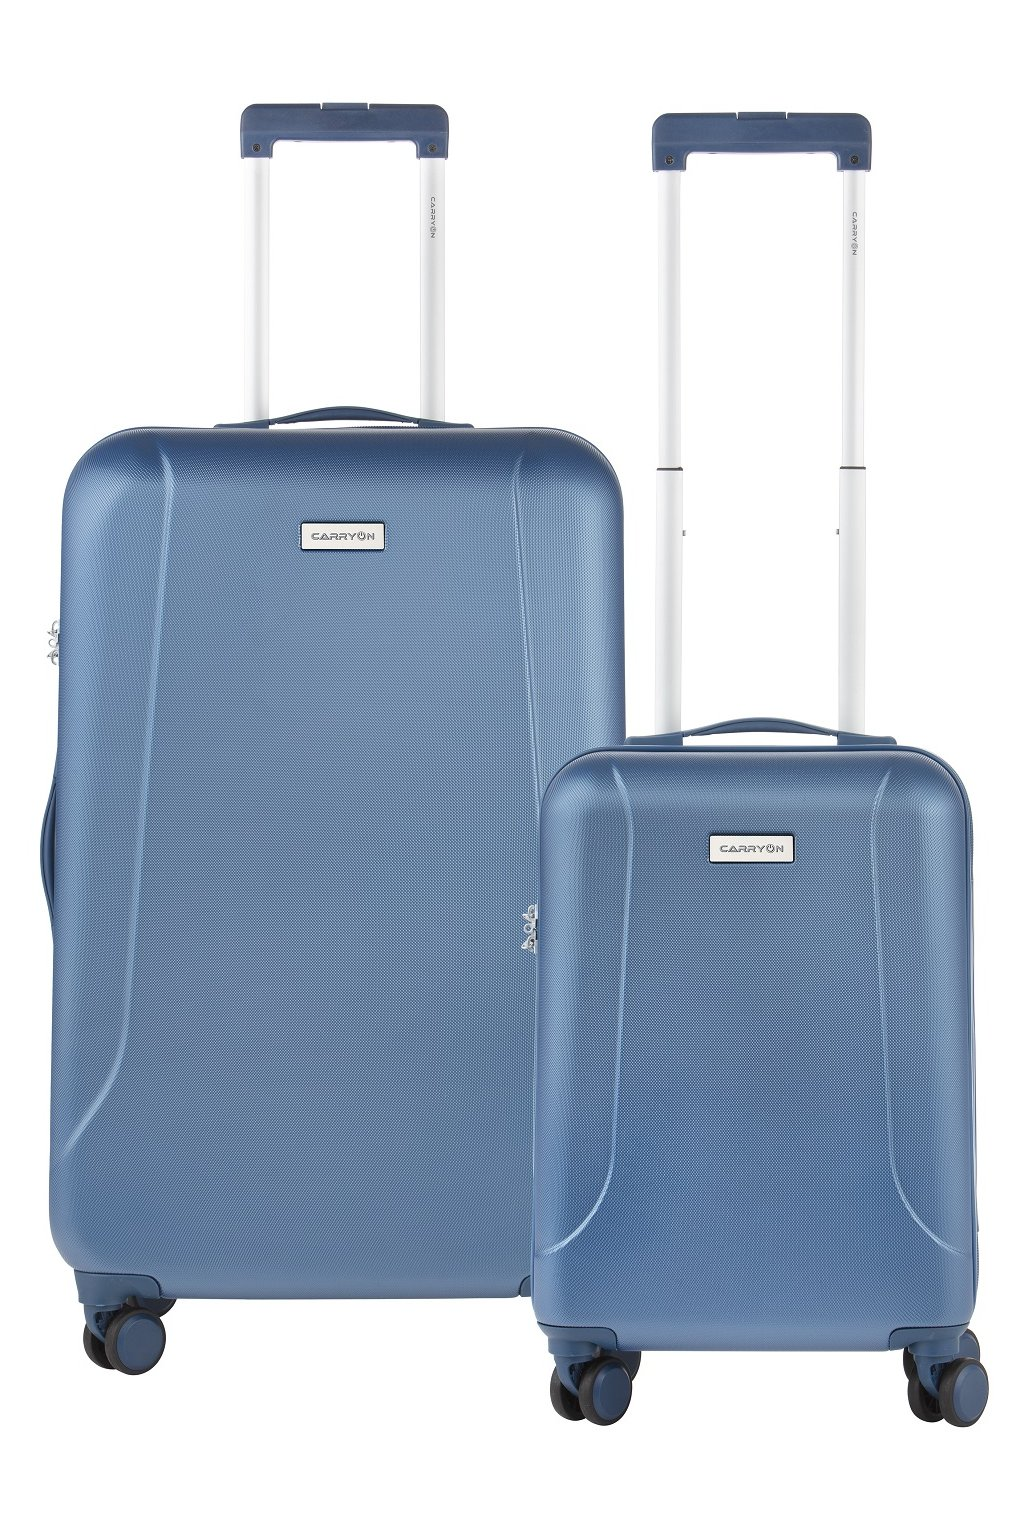 kufrland carryon skyhopper blue (3)